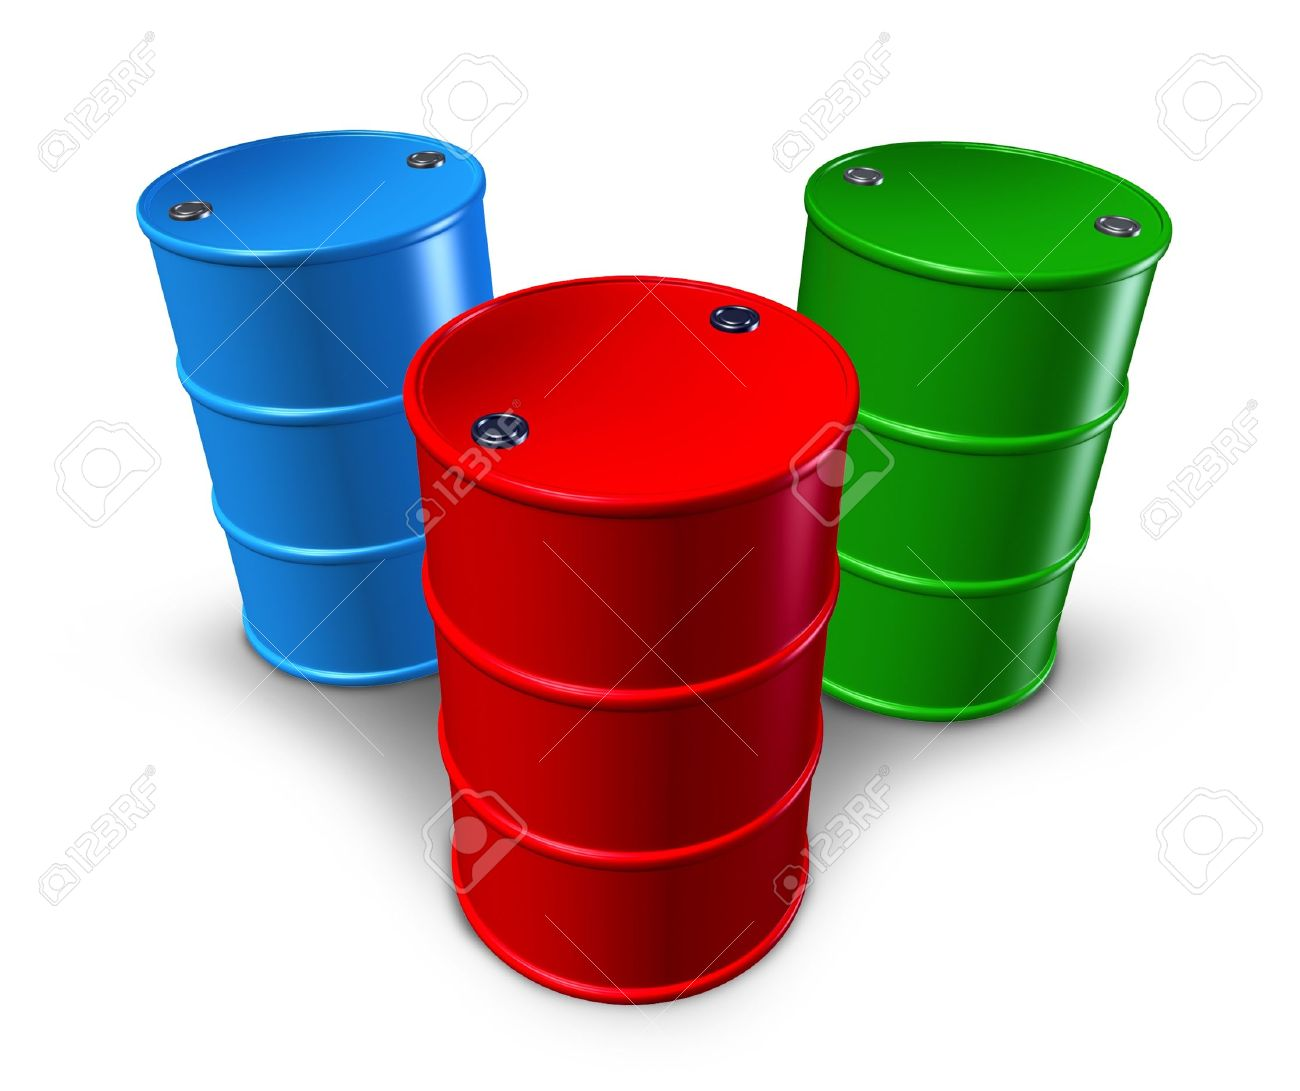 Barrel drums clipground metal. Chemical clipart toxic chemical